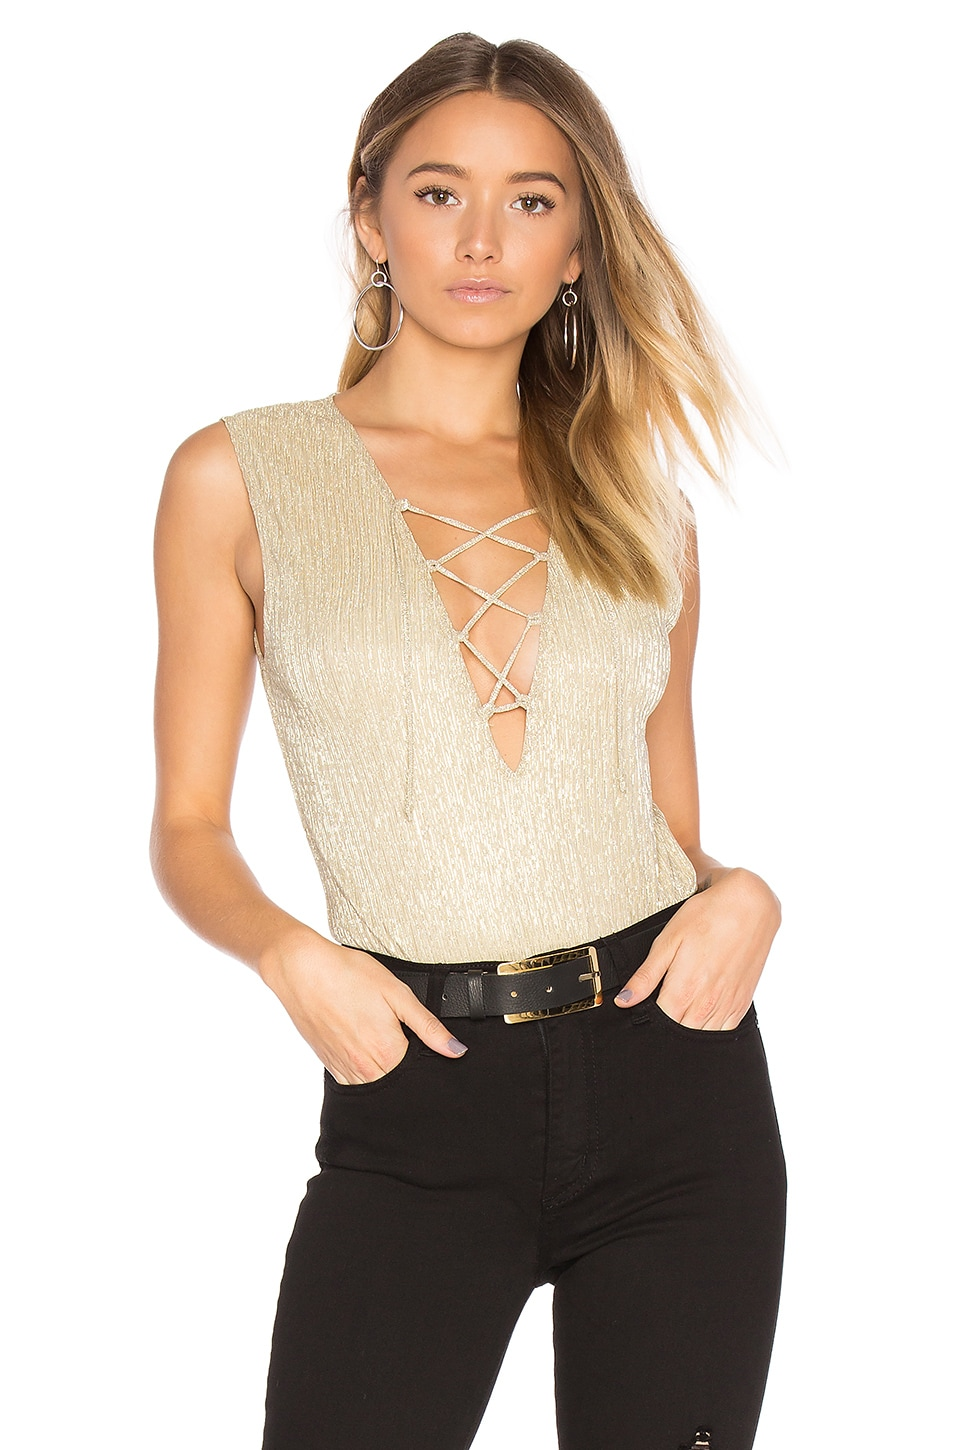 ANINE BING Lace Up Bodysuit in Gold Metallic